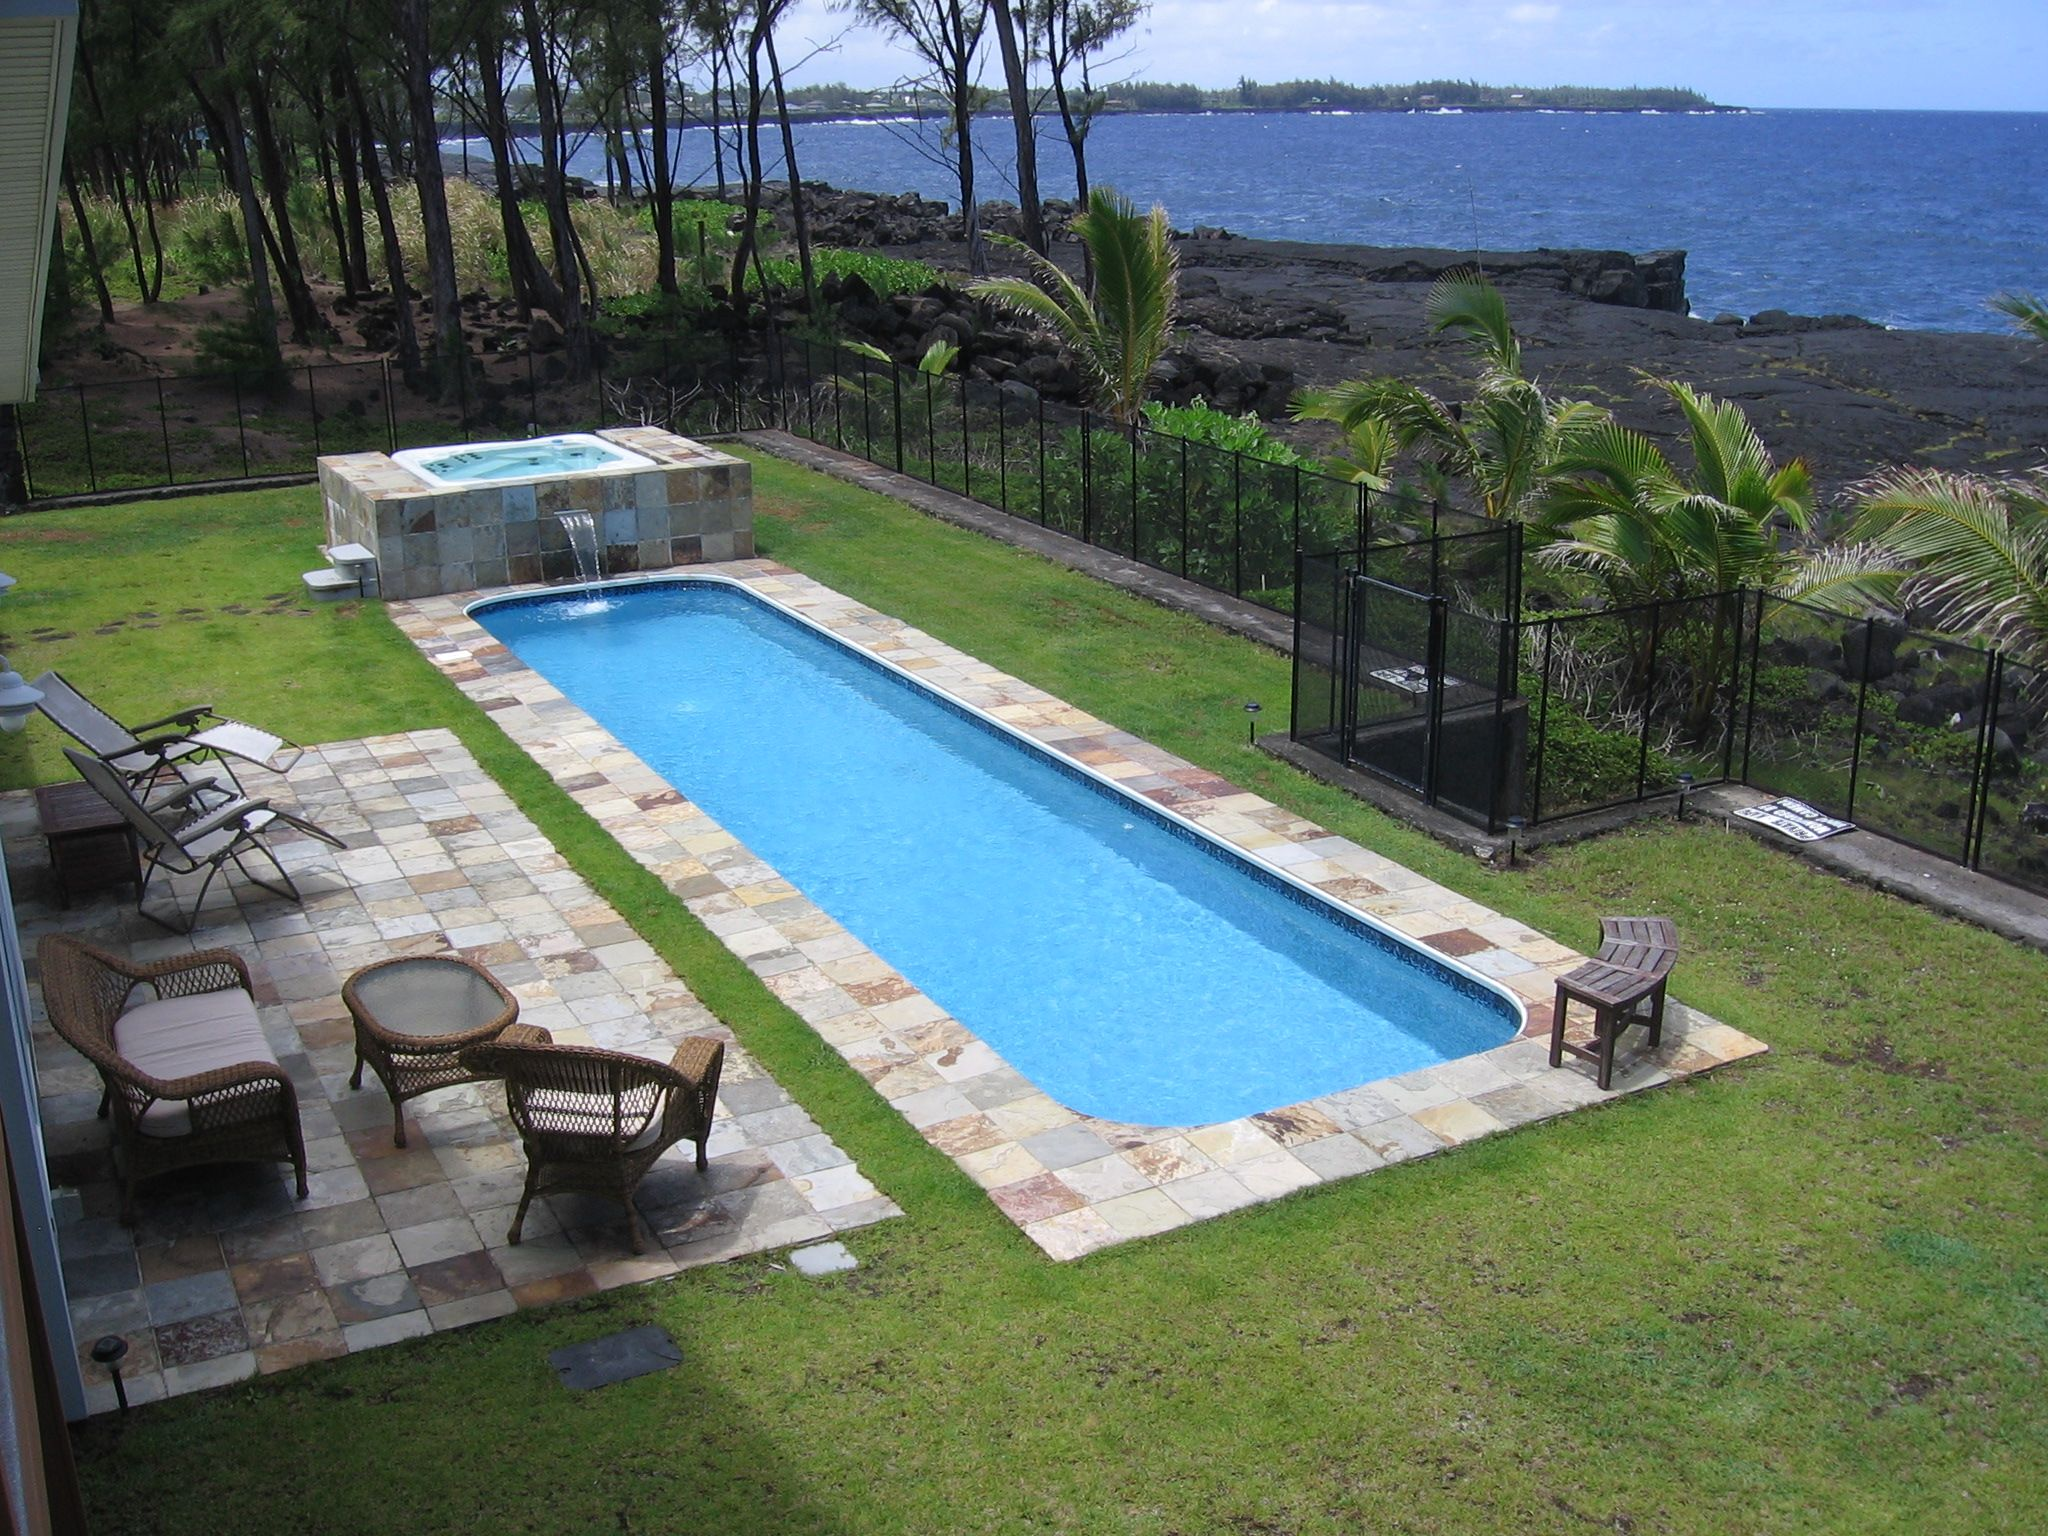 Your Own Sparkling 38 Lap Pool And Hot Tub At Hale Mar Hawaii Hawaii Vacation Rentals Pool Hot Tub House